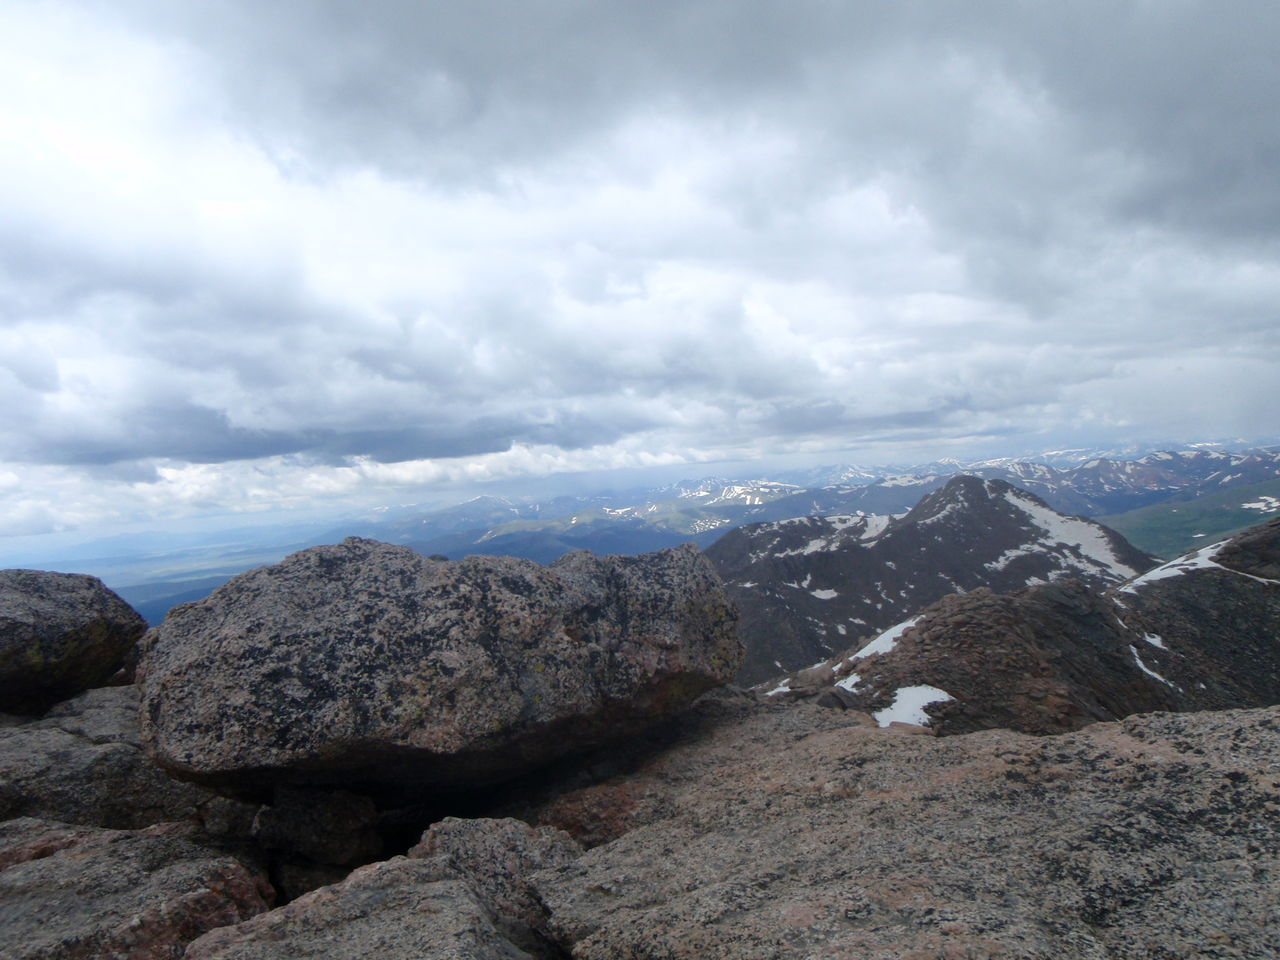 Scenic View Of Dramatic Landscape Against Cloudy Sky